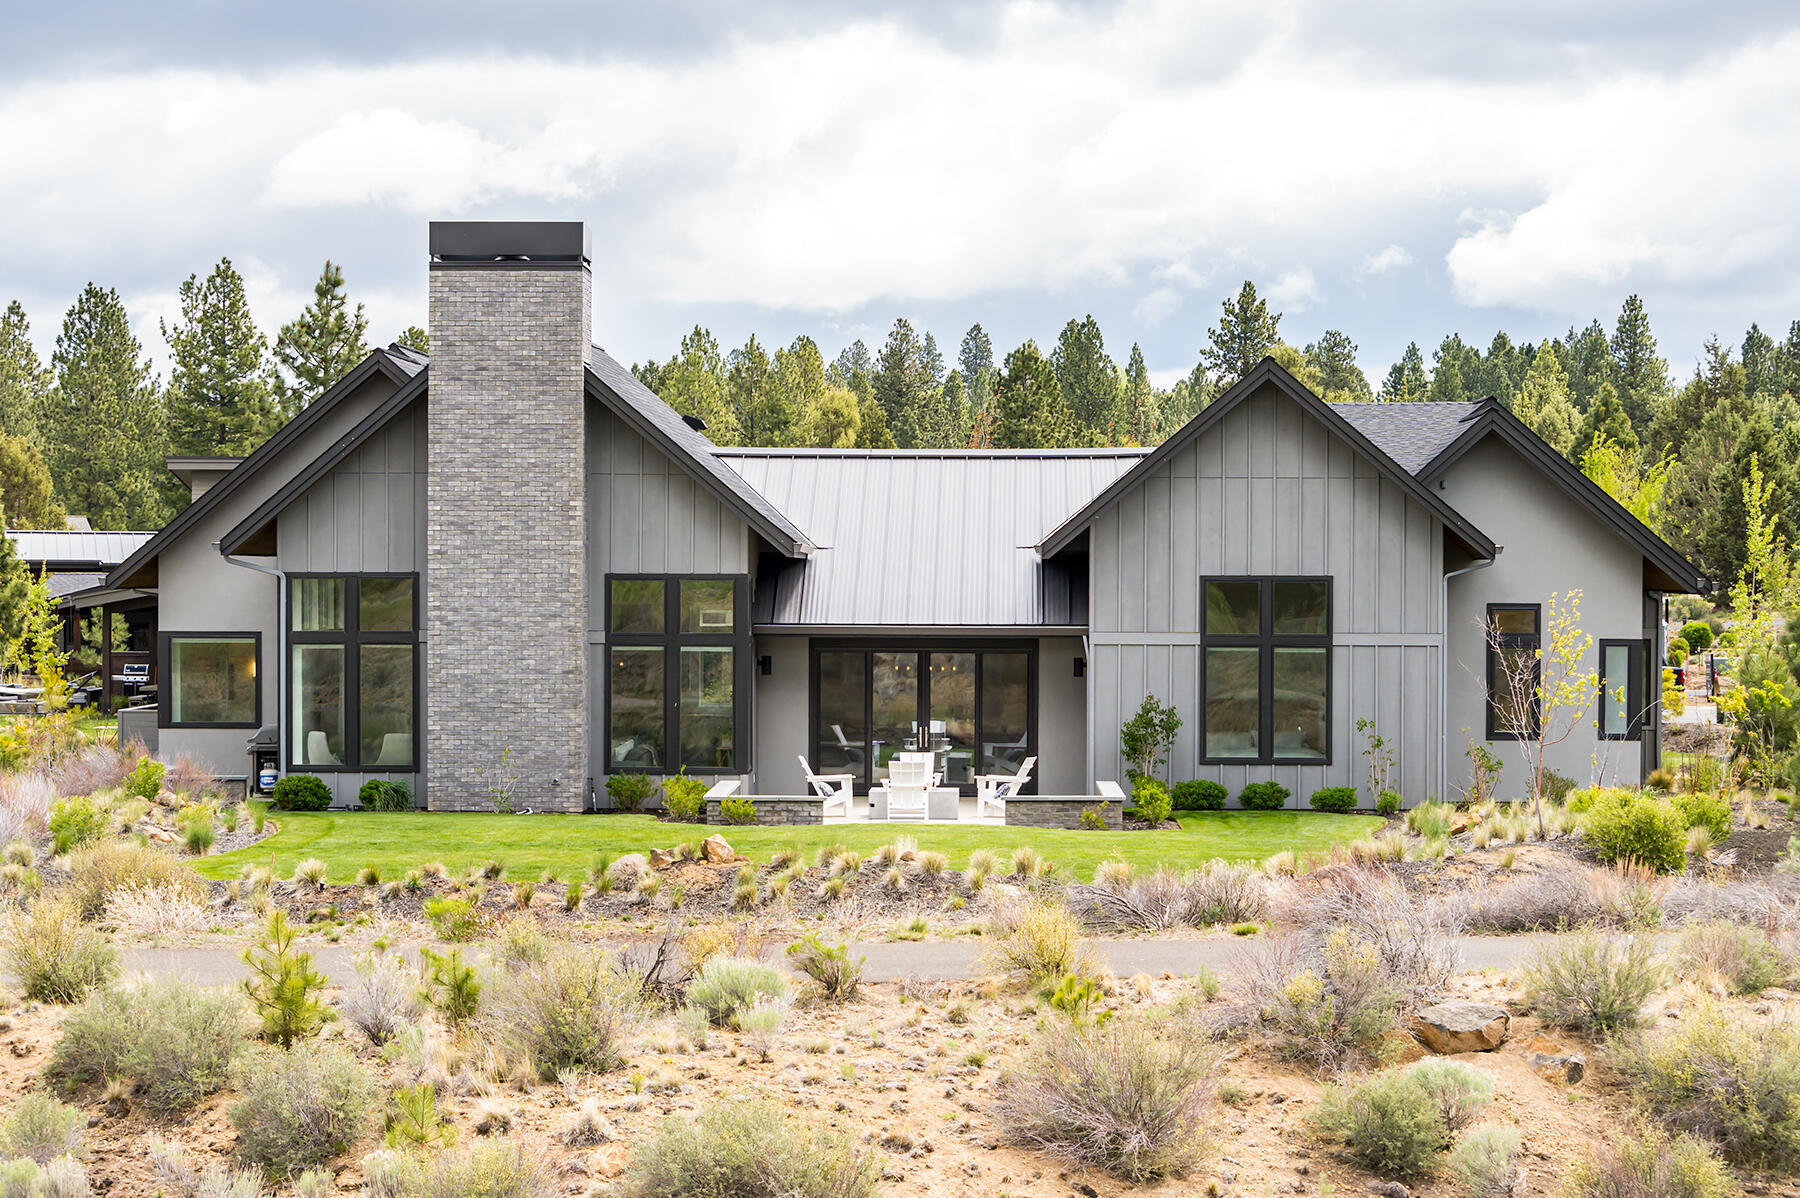 This beautiful modern farmhouse sits on a premium end of cul-de-sac level lot buffered by a large common area and set back from the 12th green at Tetherow, providing exceptional privacy and sweeping long range views of the high desert landscape and Cascade Mountains. Towering vaulted ceilings fill the home with natural light while the custom concrete and shiplap fireplace flanked by large windows takes center stage in the magazine-worthy great room. The carefully thought out floor plan lives like a single level home with 4 en-suite bedrooms, office and bonus room all on the main level.  The primary suite includes a spa-like bathroom with soaring ceilings and great separation from the additional bedroom suites. Two separate upstairs bonus areas provide flexibility in use or an ideal area for overflow guests with a full bathroom. Designer fixtures and finishes throughout provide luxurious yet comfortable living. This is Central Oregon living at its best!